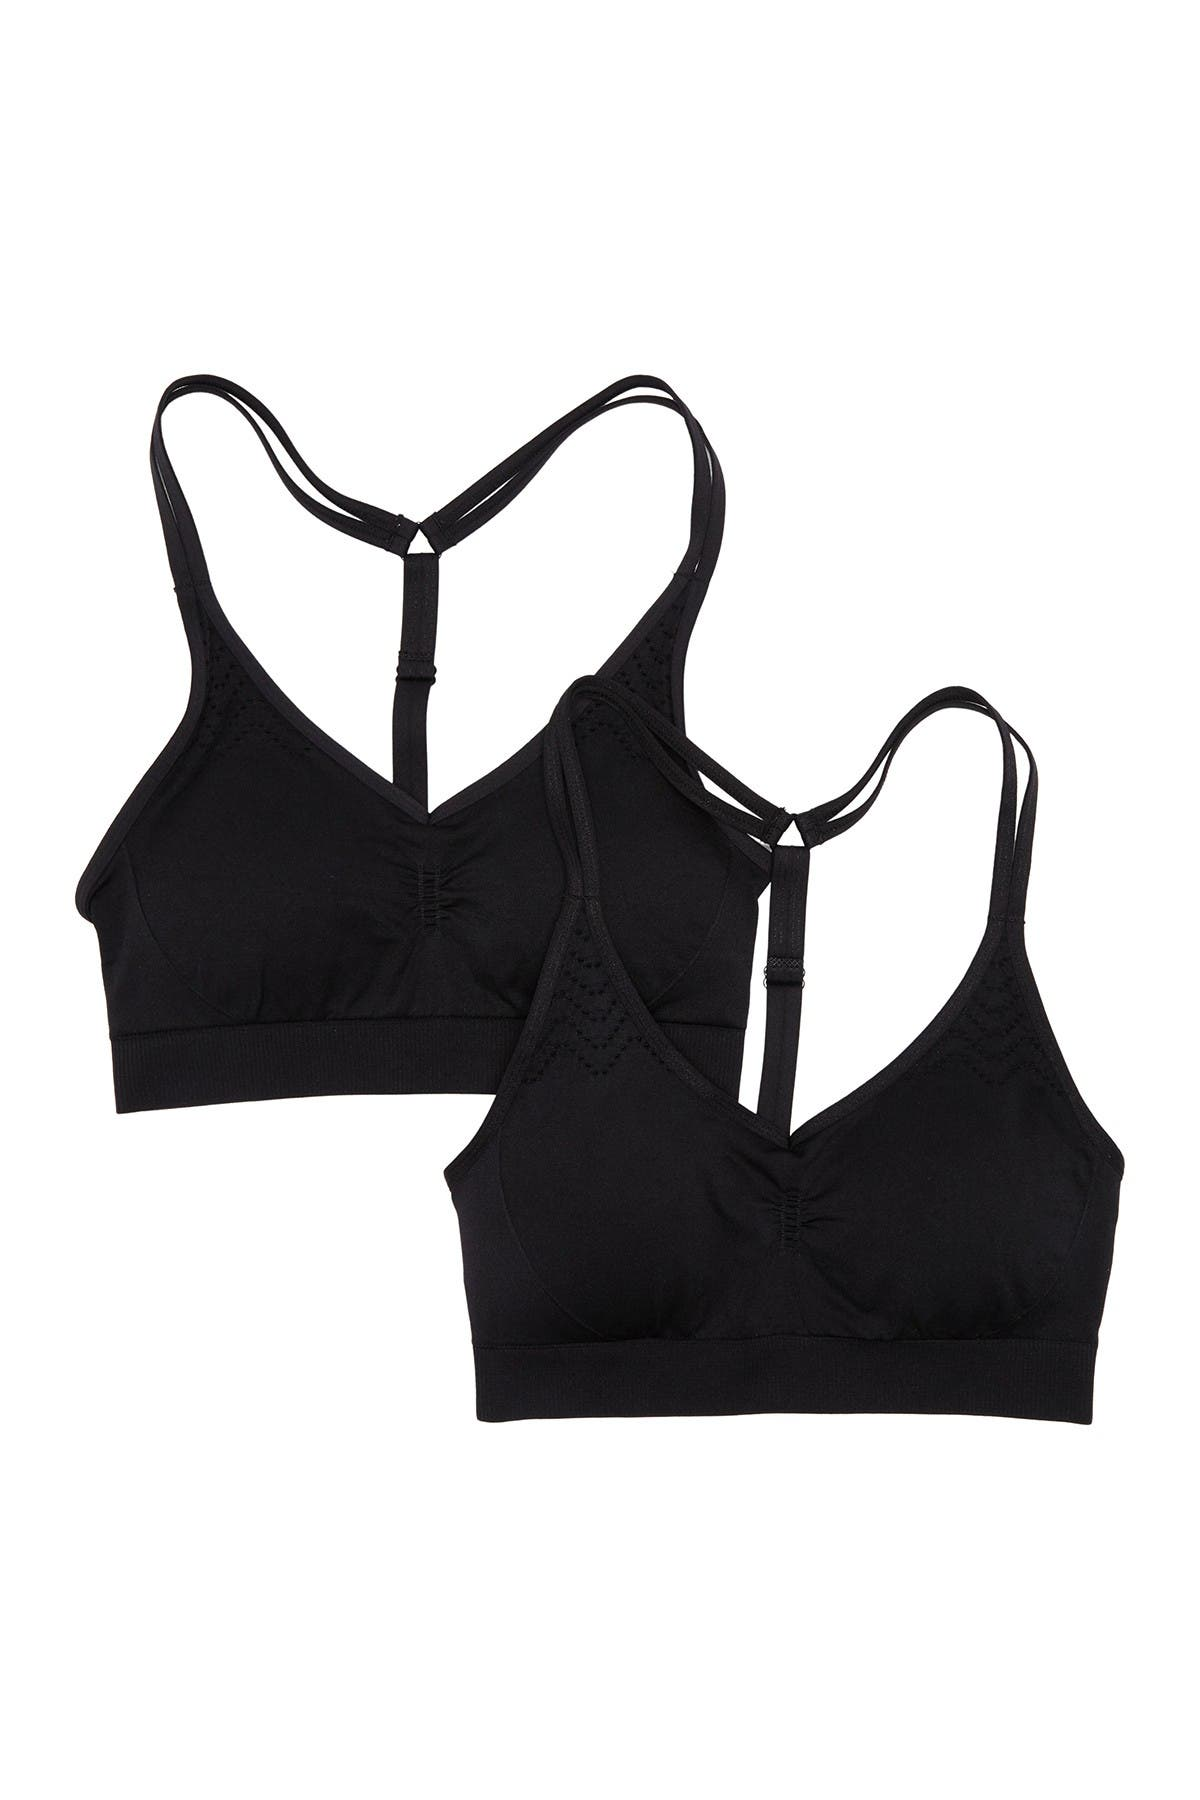 Image of 90 Degree By Reflex Strappy Racerback Sports Bra - Pack of 2